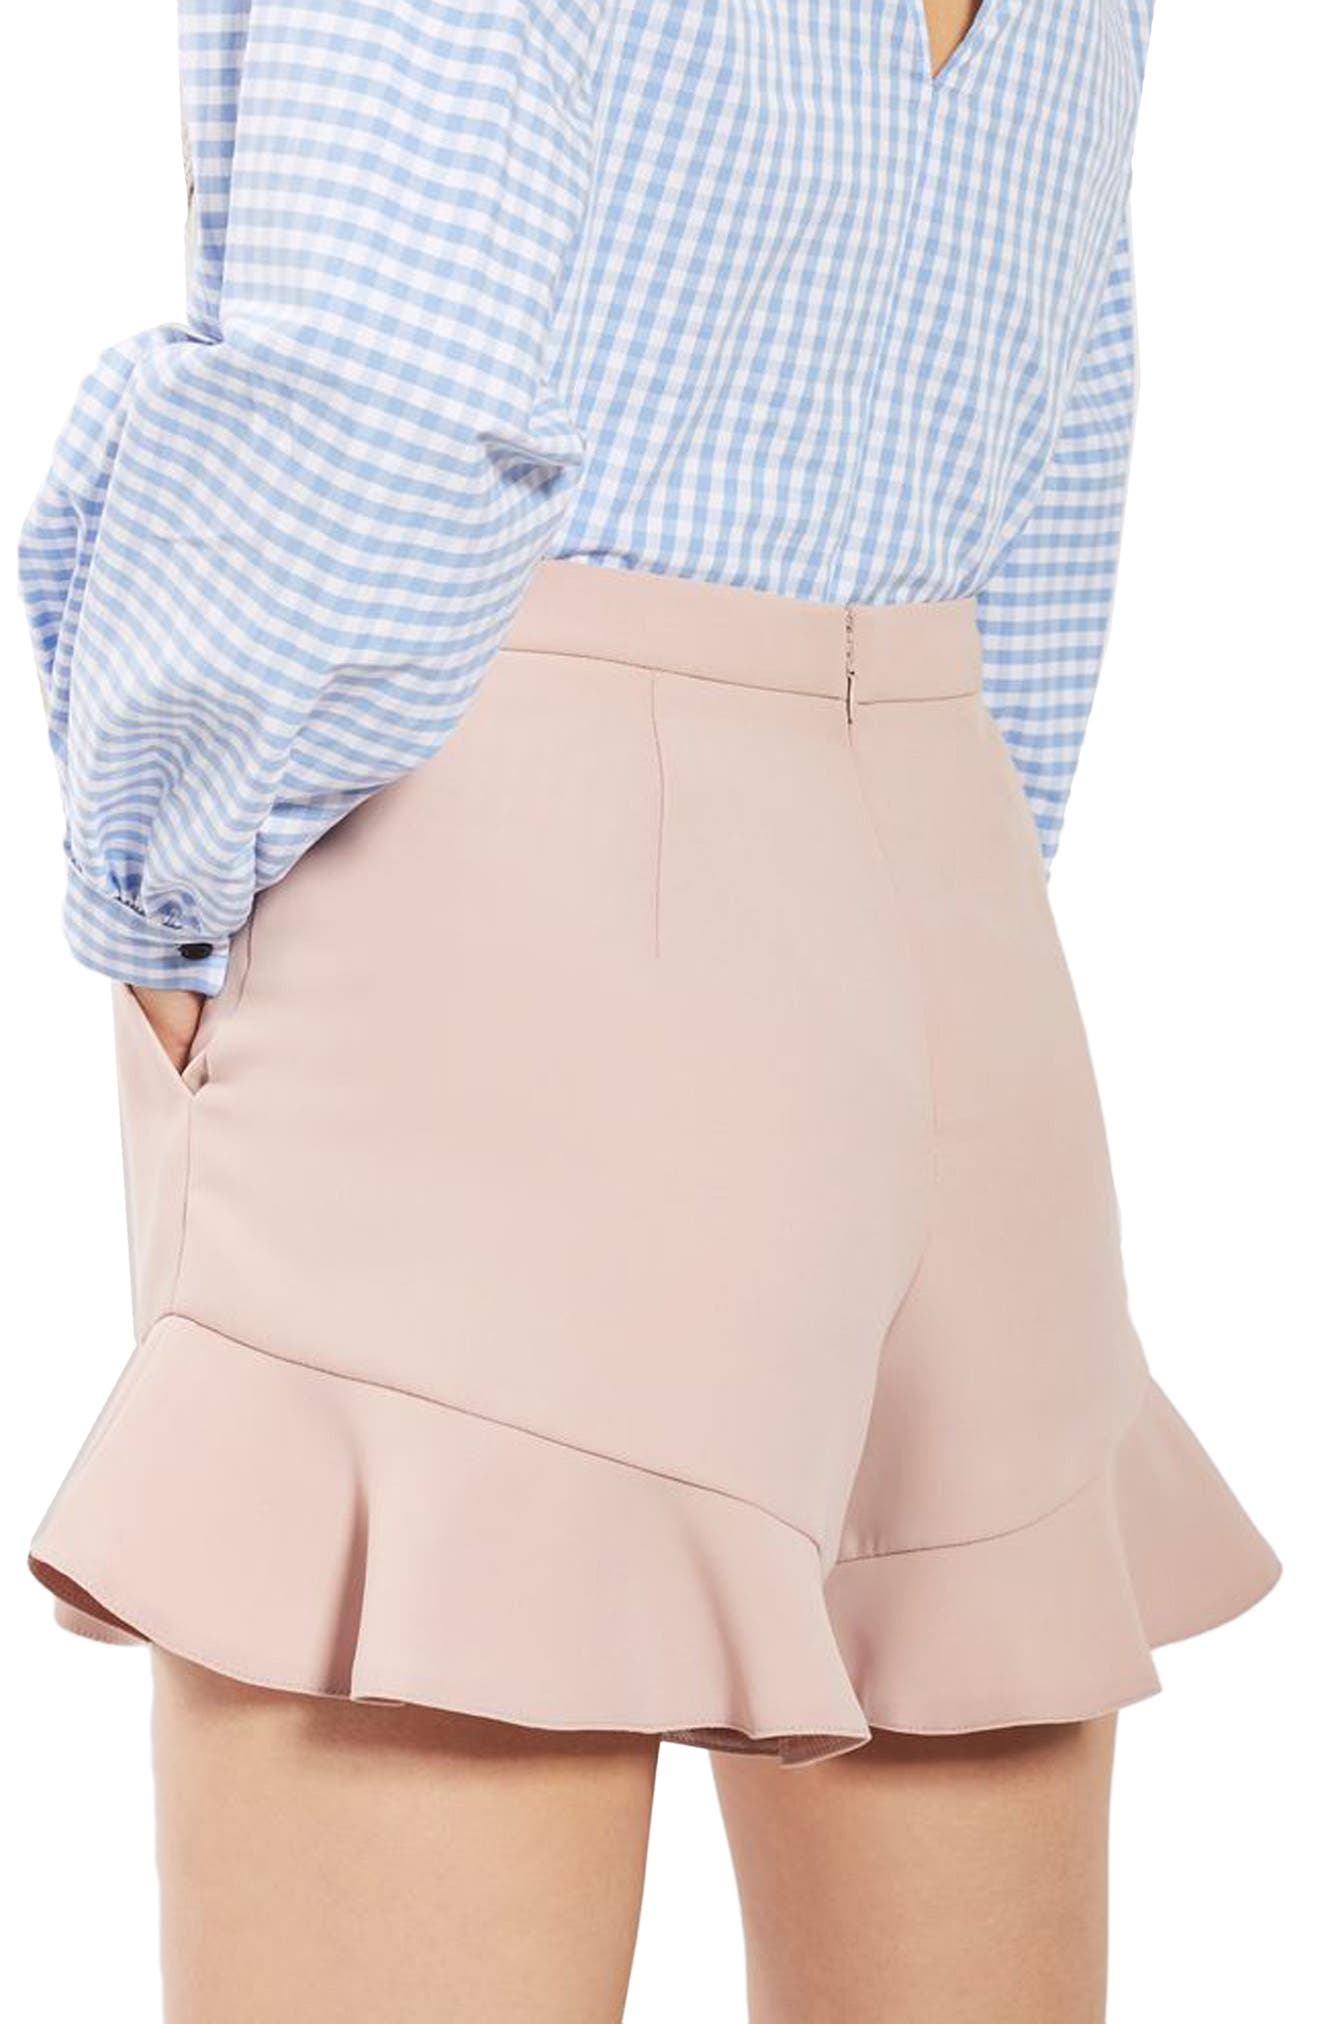 Alternate Image 3  - Topshop Frill Hem Shorts